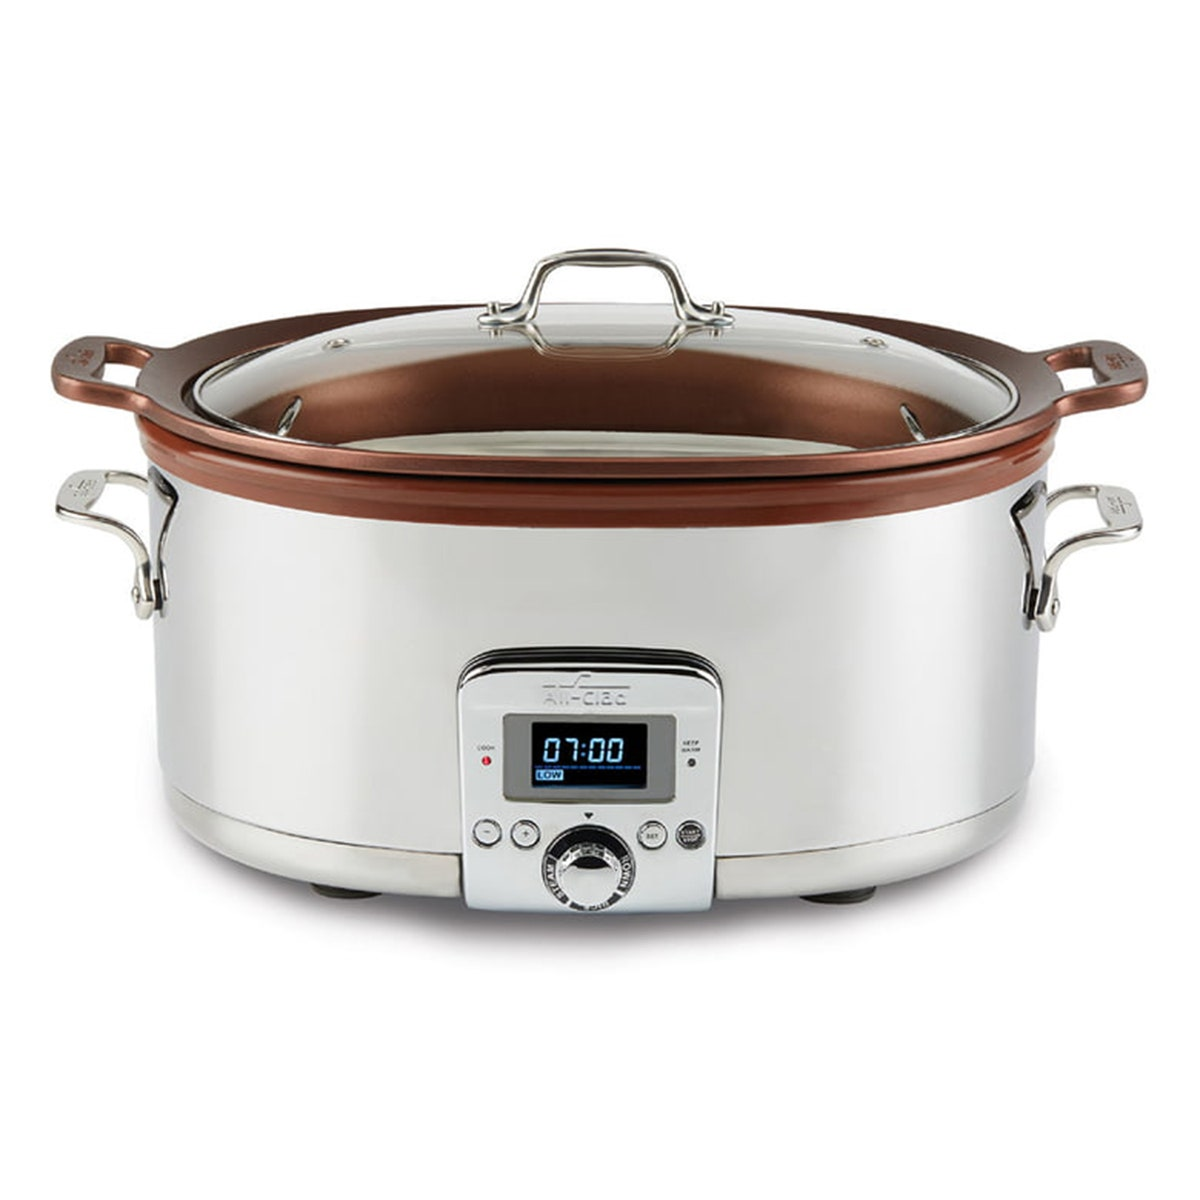 silver and brown all-clad gourmet slow cooker